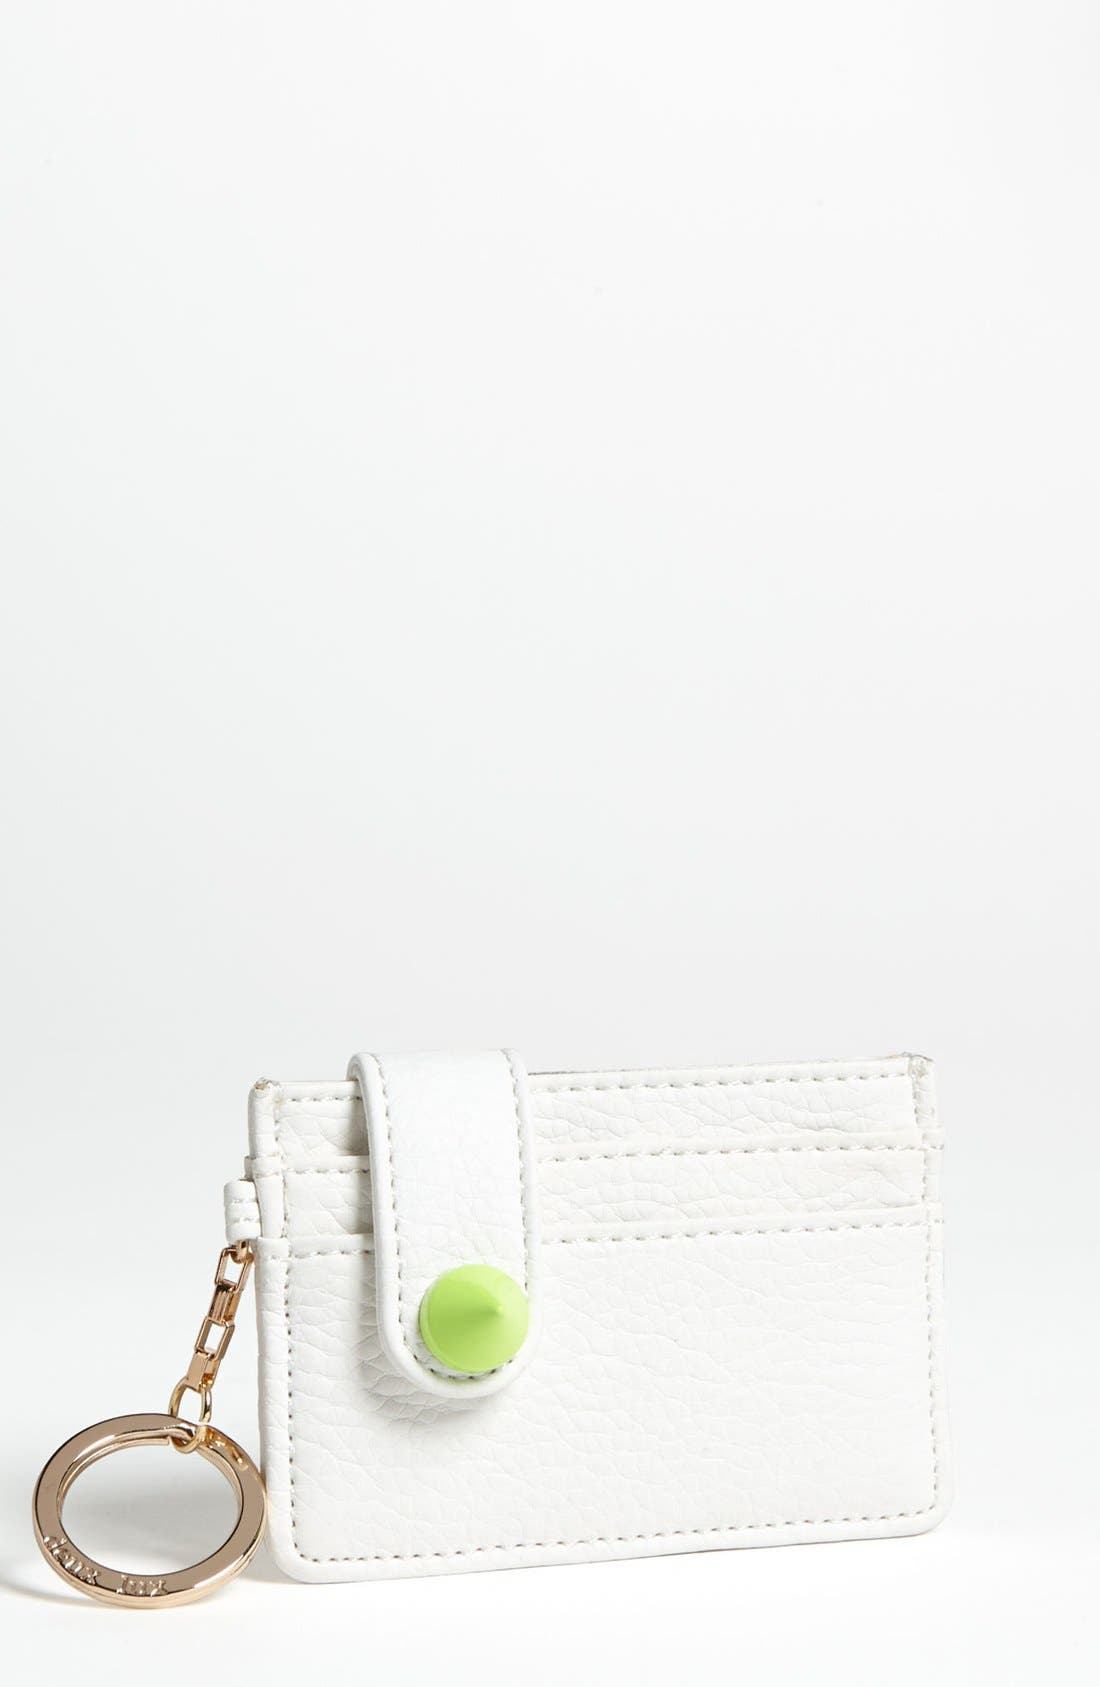 Main Image - Deux Lux 'Empire City' Key Ring Card Wallet